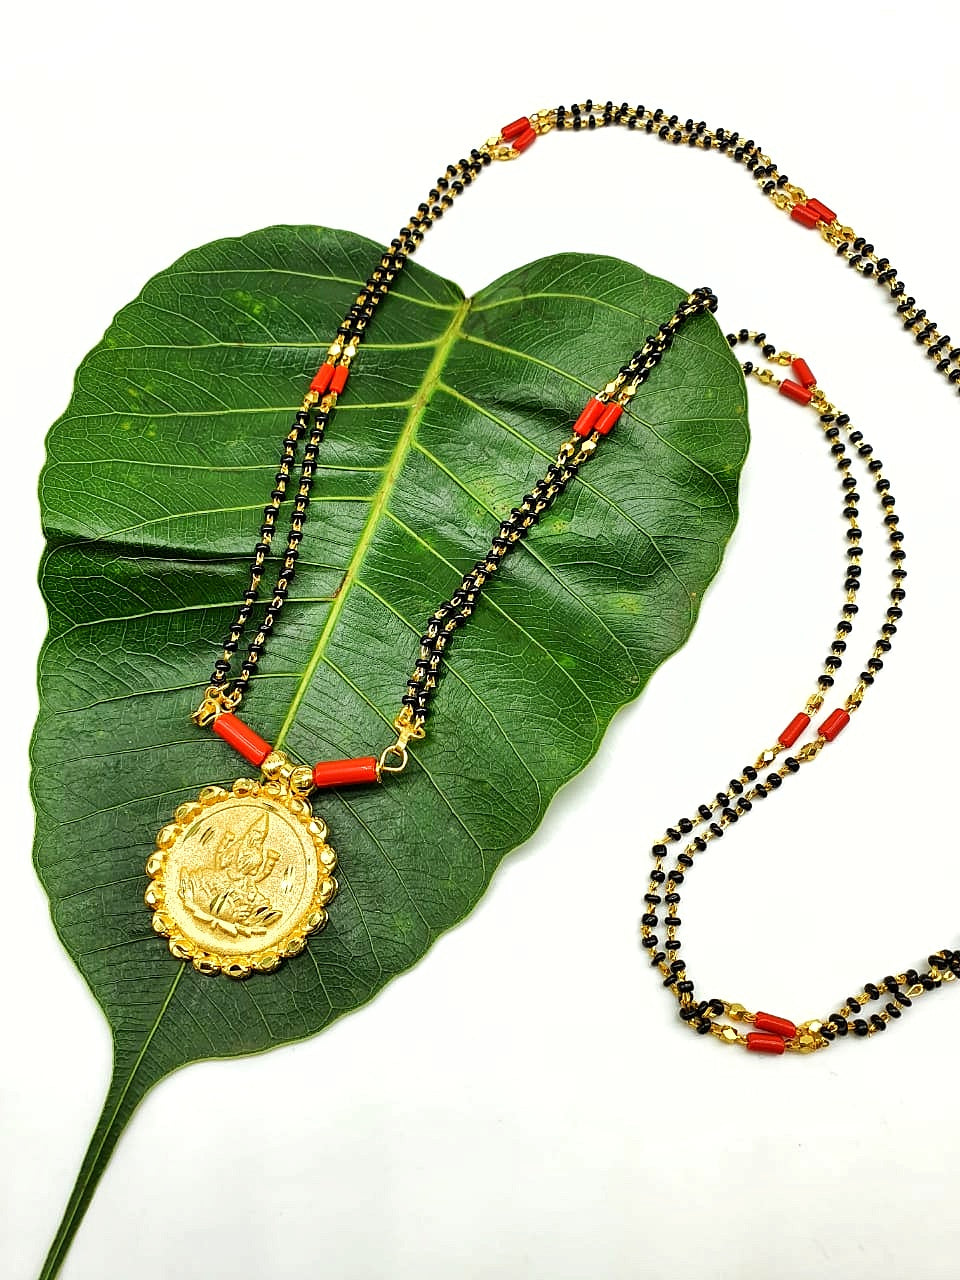 Long Mangalsutra Designs Gold Plated Latest Lakshmi (Laxmi) Coin Pendant Black Beads Coral Mangalsutra - DigitalDressRoom